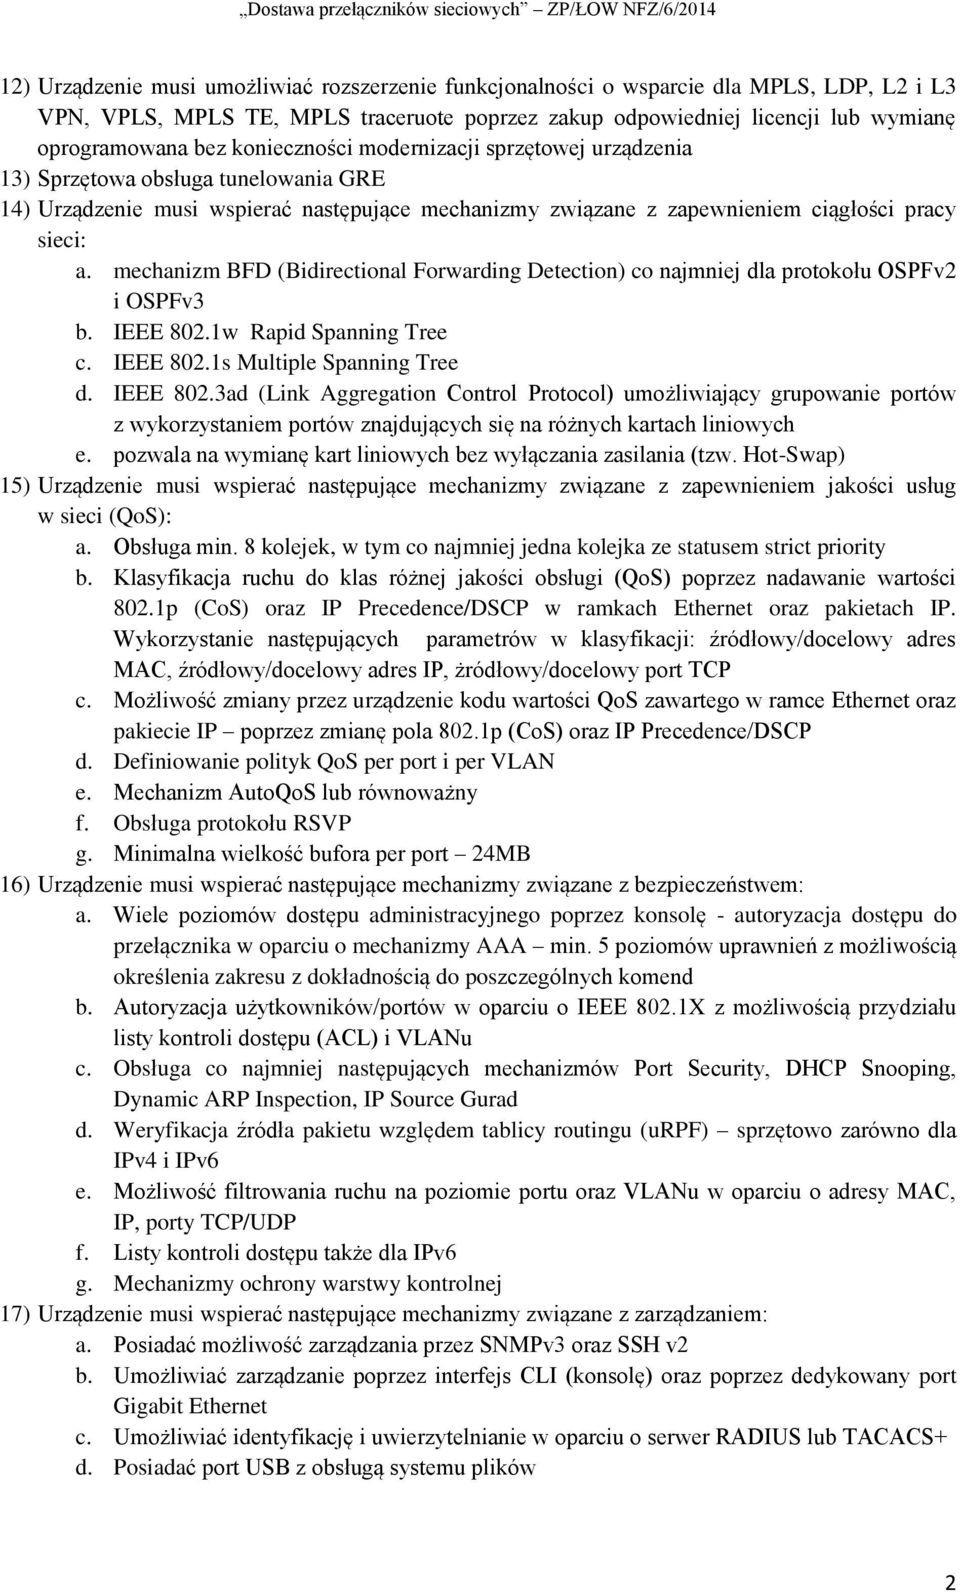 mechanizm BFD (Bidirectional Forwarding Detection) co najmniej dla protokołu OSPFv2 i OSPFv3 b. IEEE 802.